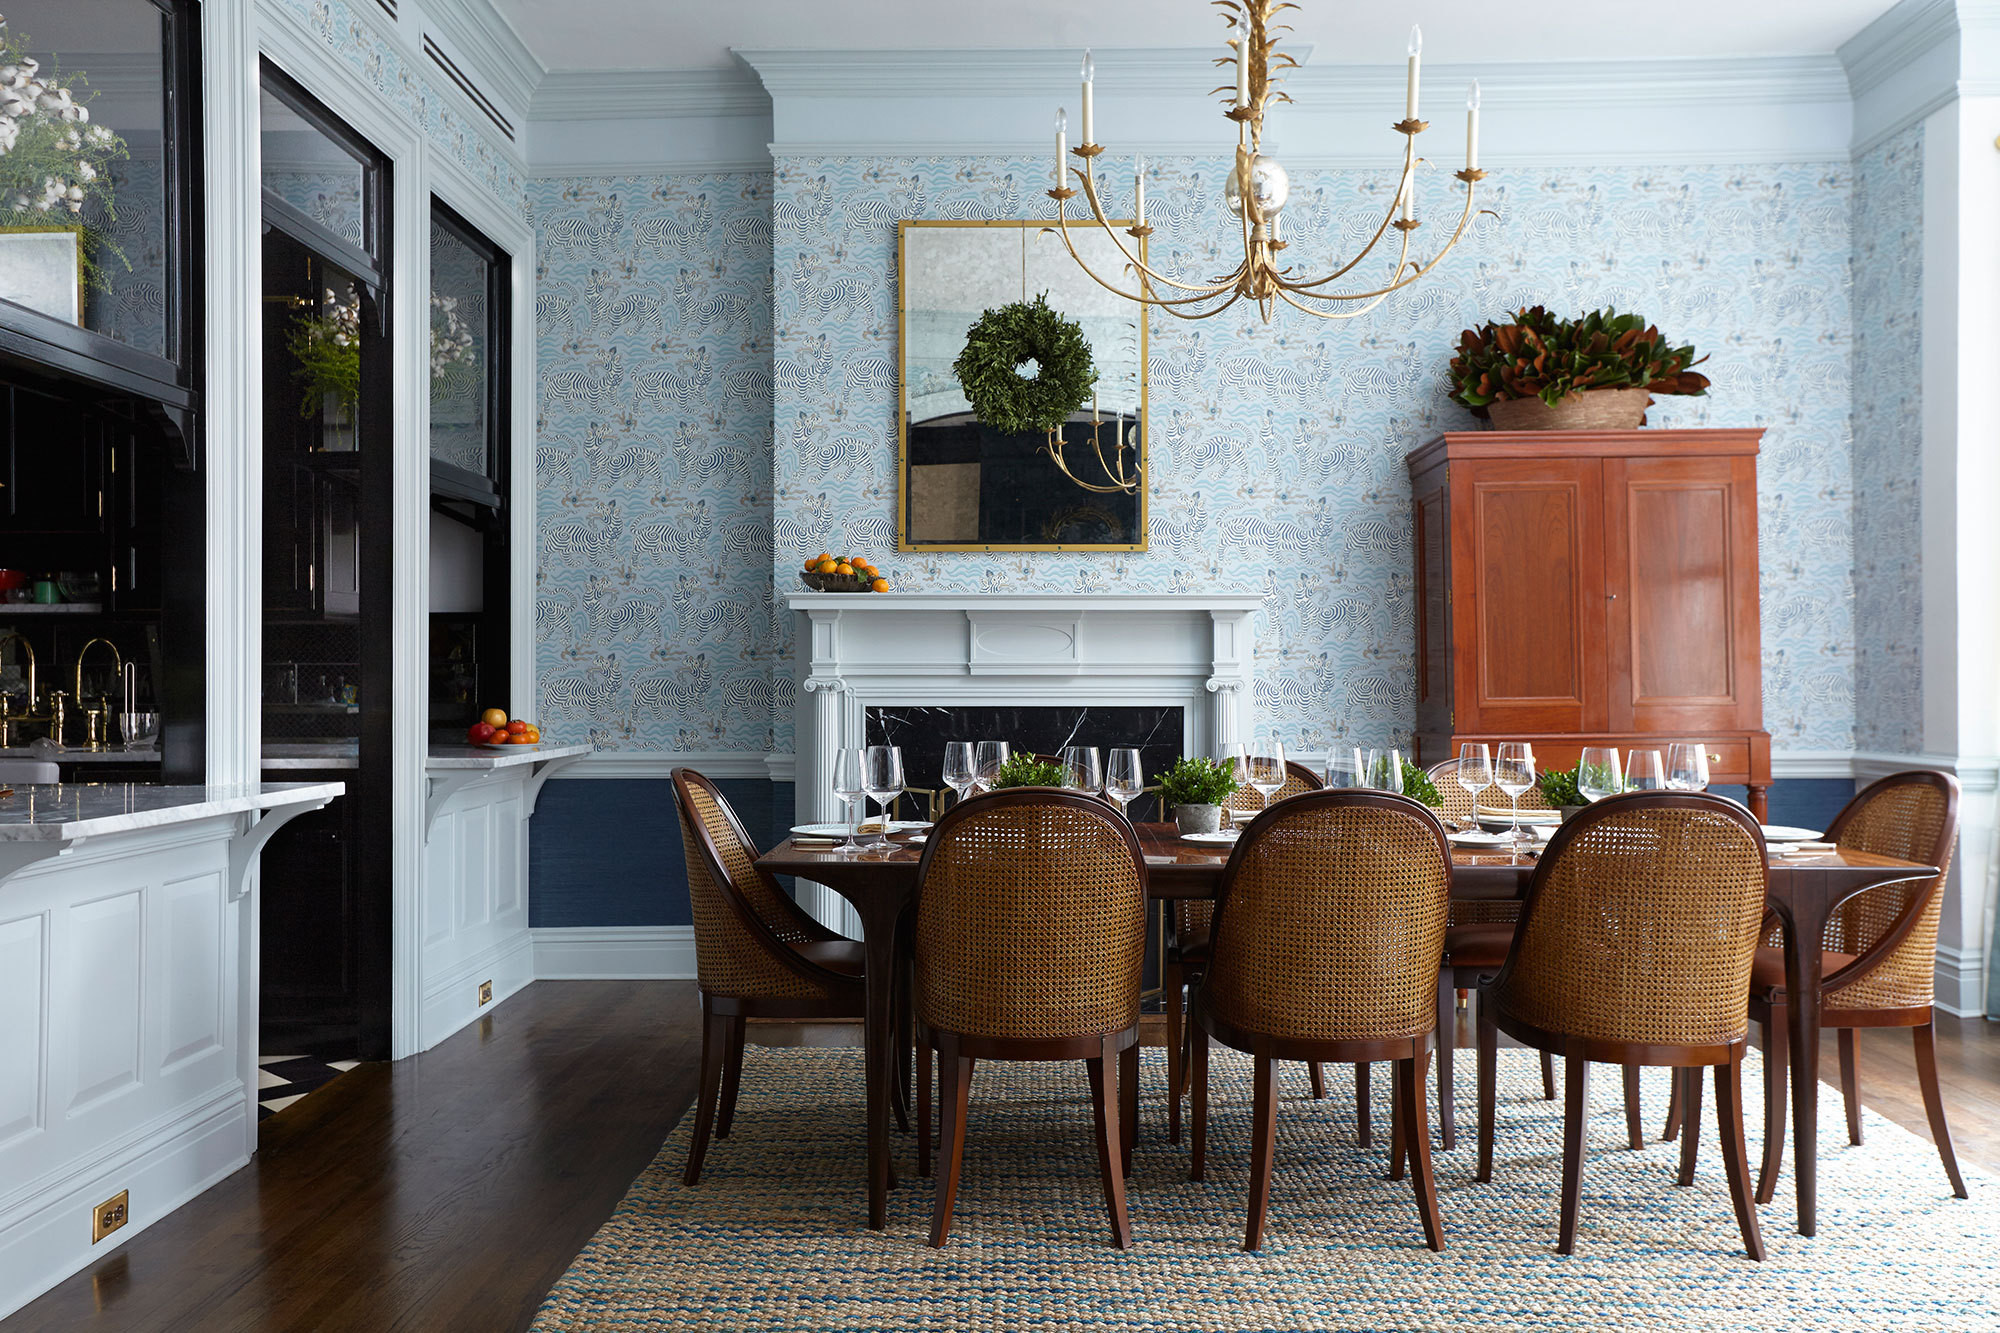 Chic Contemporary Modern Wallpaper A Perfectly Patterned Brooklyn Heights Home For The Ages Home